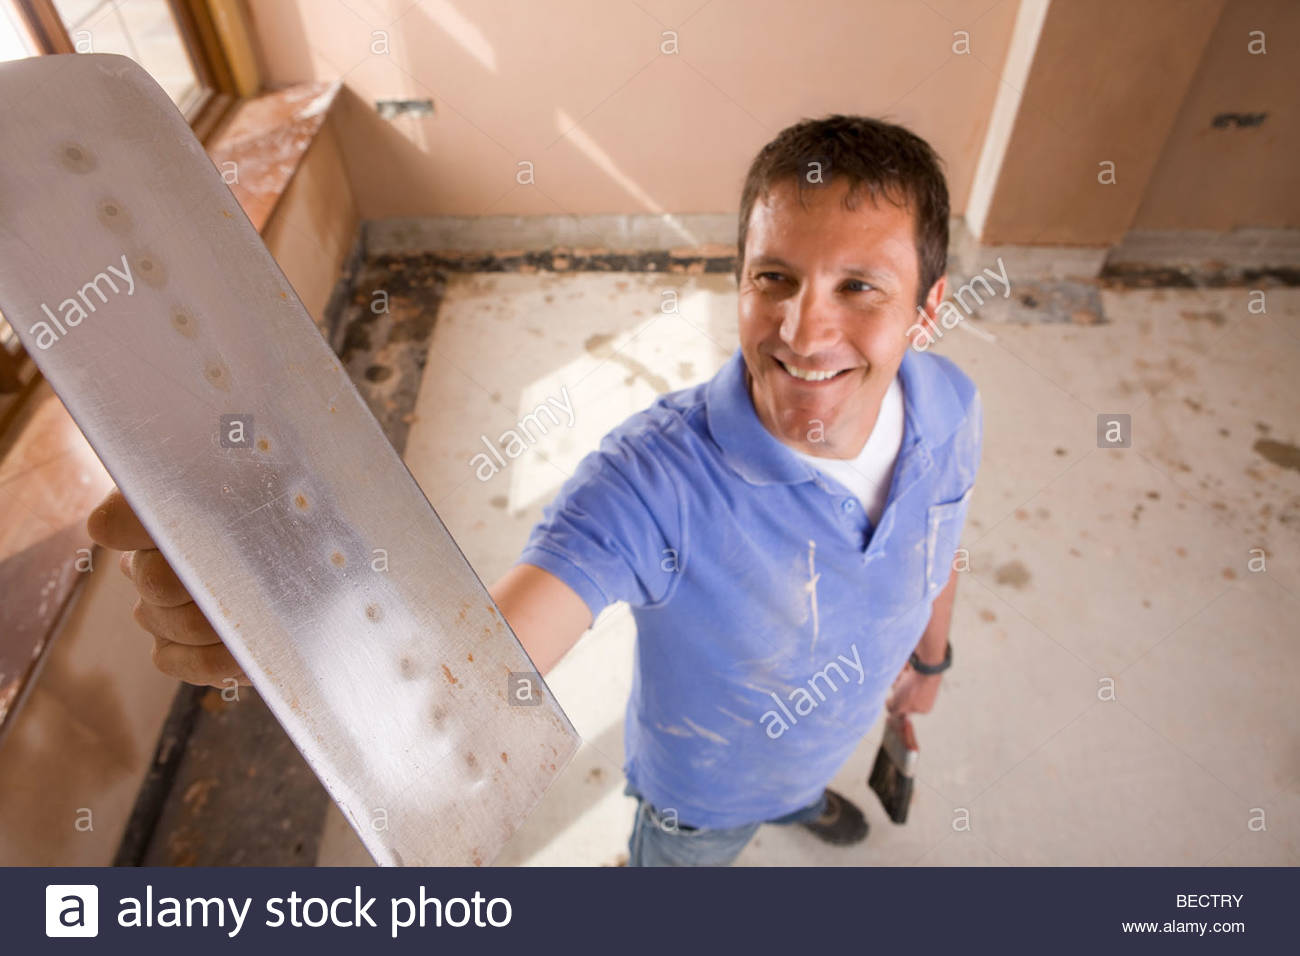 Smiling man holding plastering trowel Stock Photo